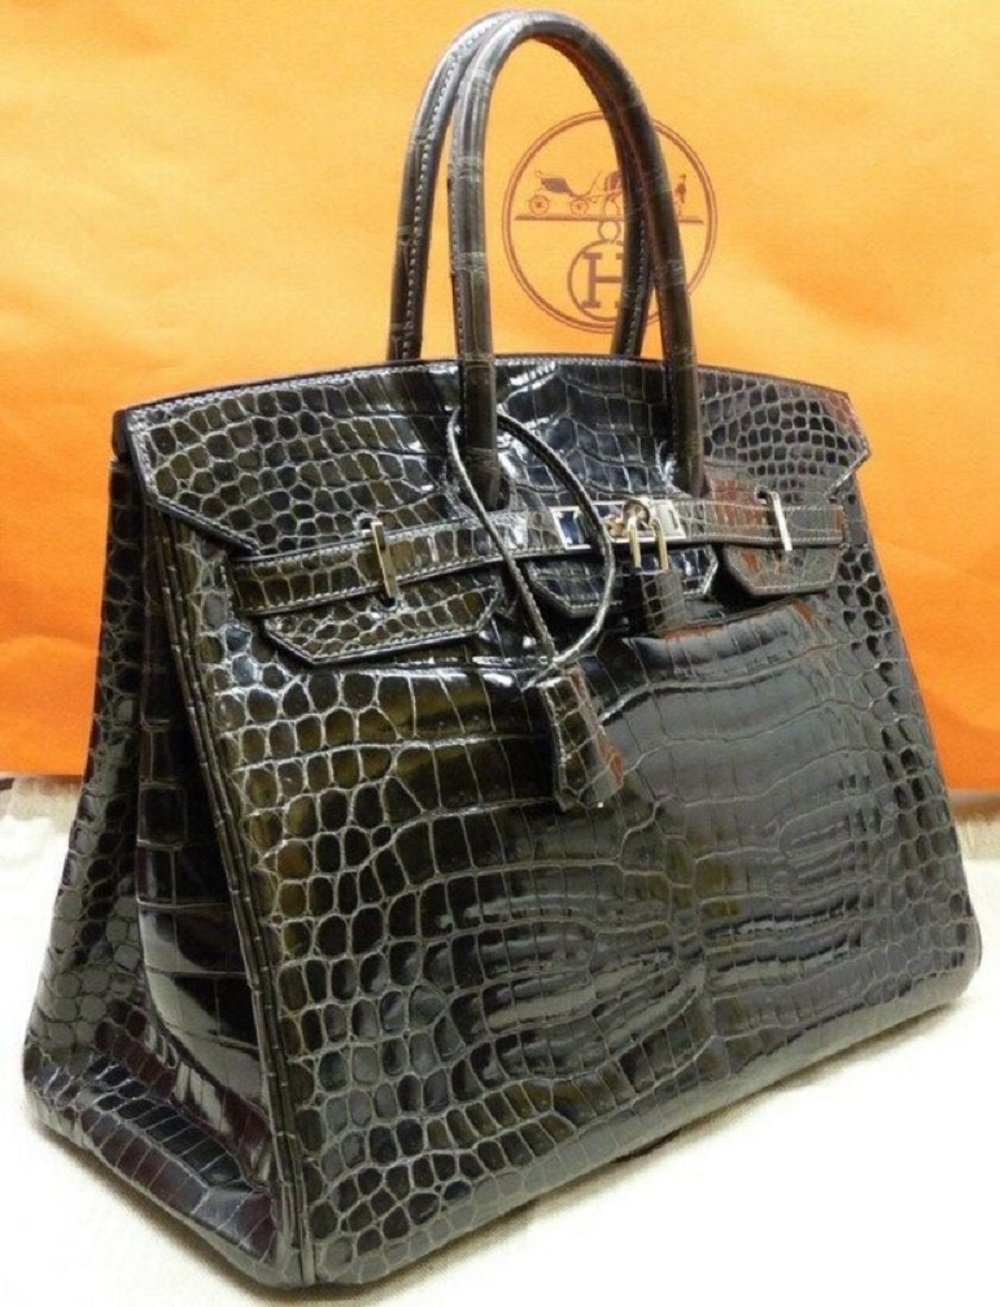 Decorative Arts, Antiques, Jewelry, Designer Handbags and Watches